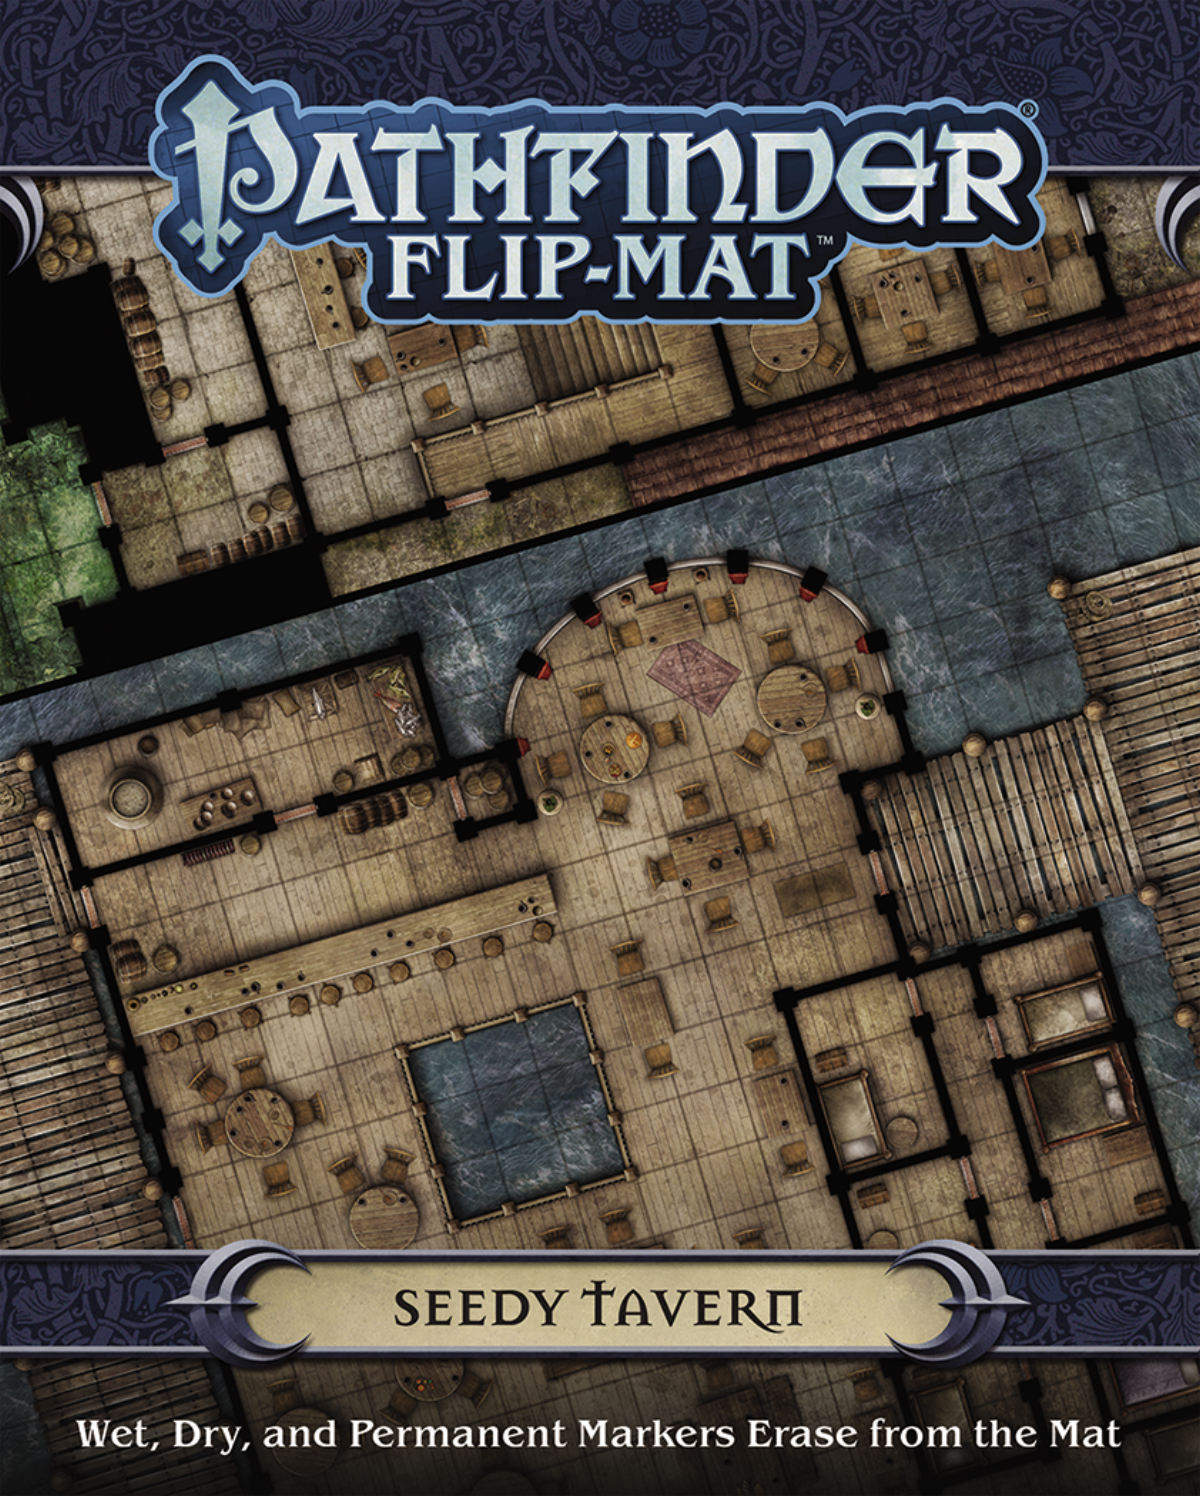 PATHFINDER FLIP MAT SEEDY TAVERN